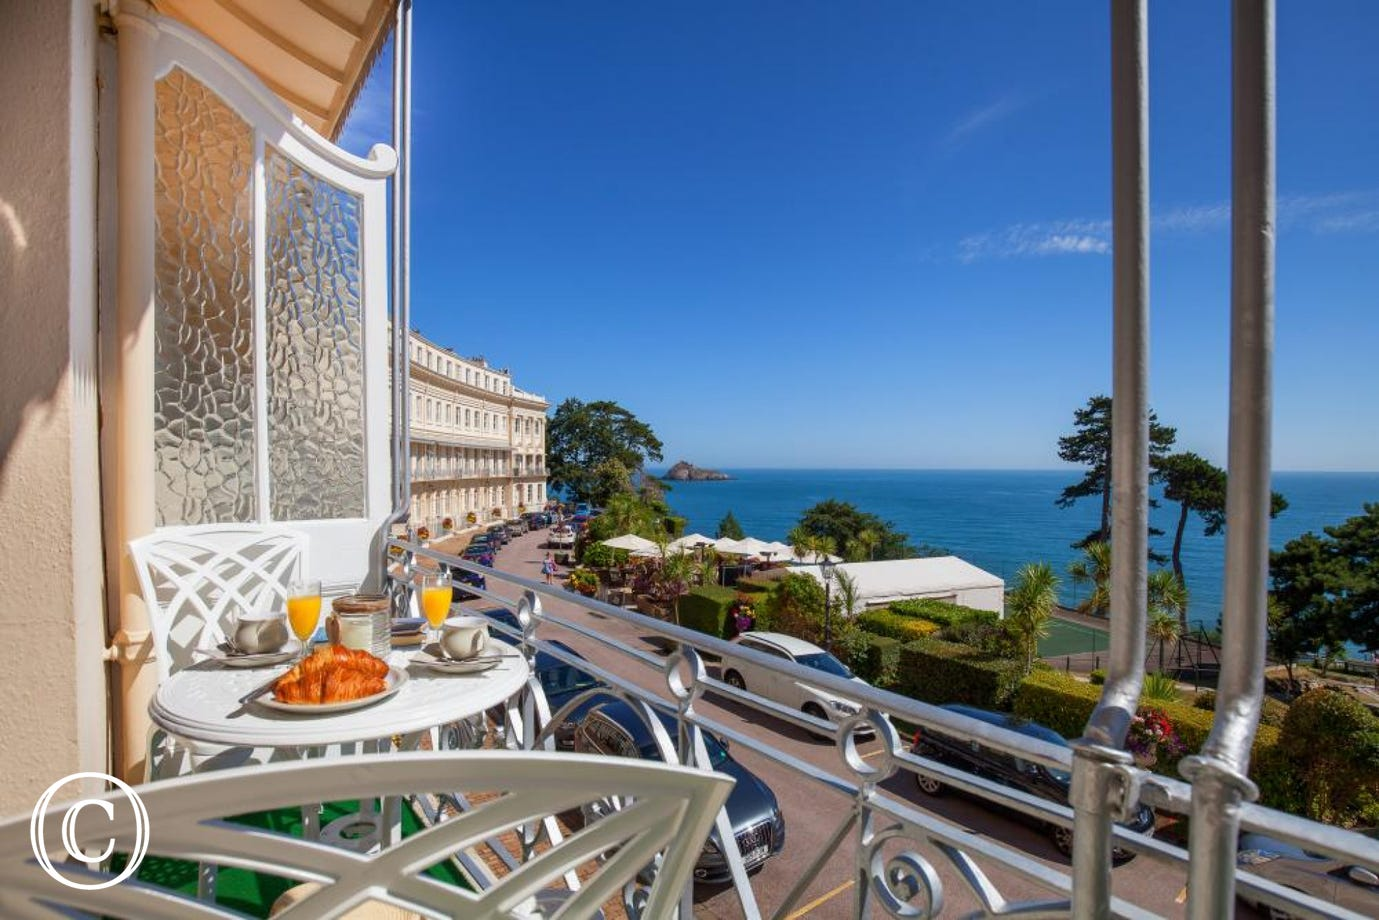 The Balcony, Torquay - Stunning views from the balcony